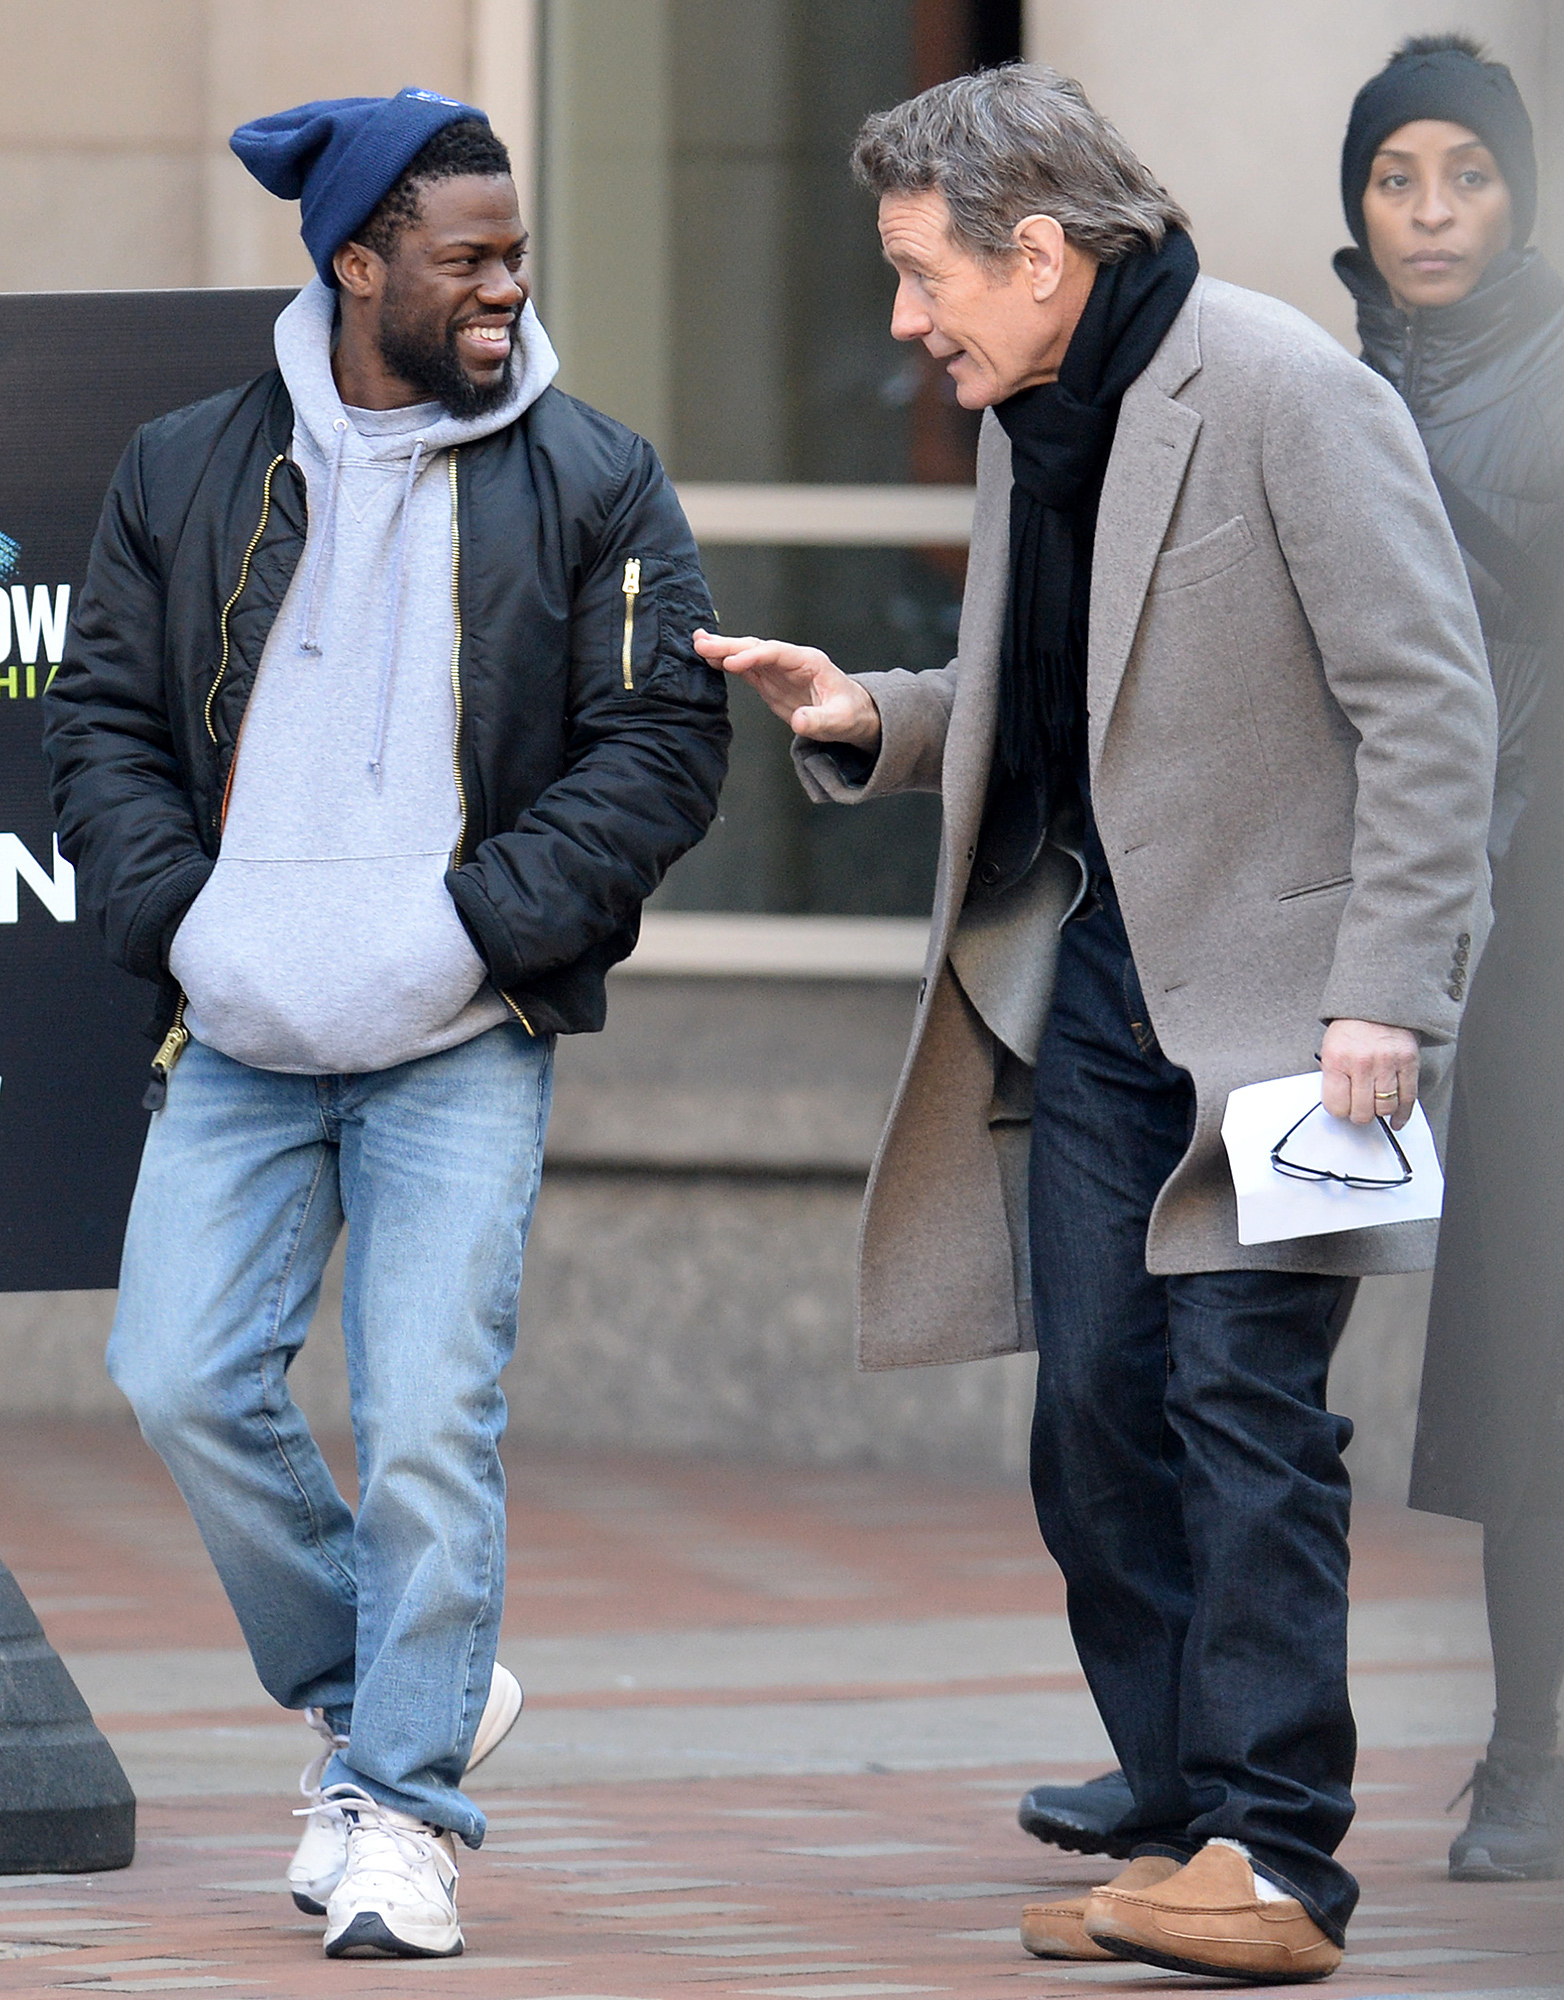 Kevin Hart and Bryan Cranston enjoy some laughs between takes on the set of Untouchable filming in Philadelphia, Pa.